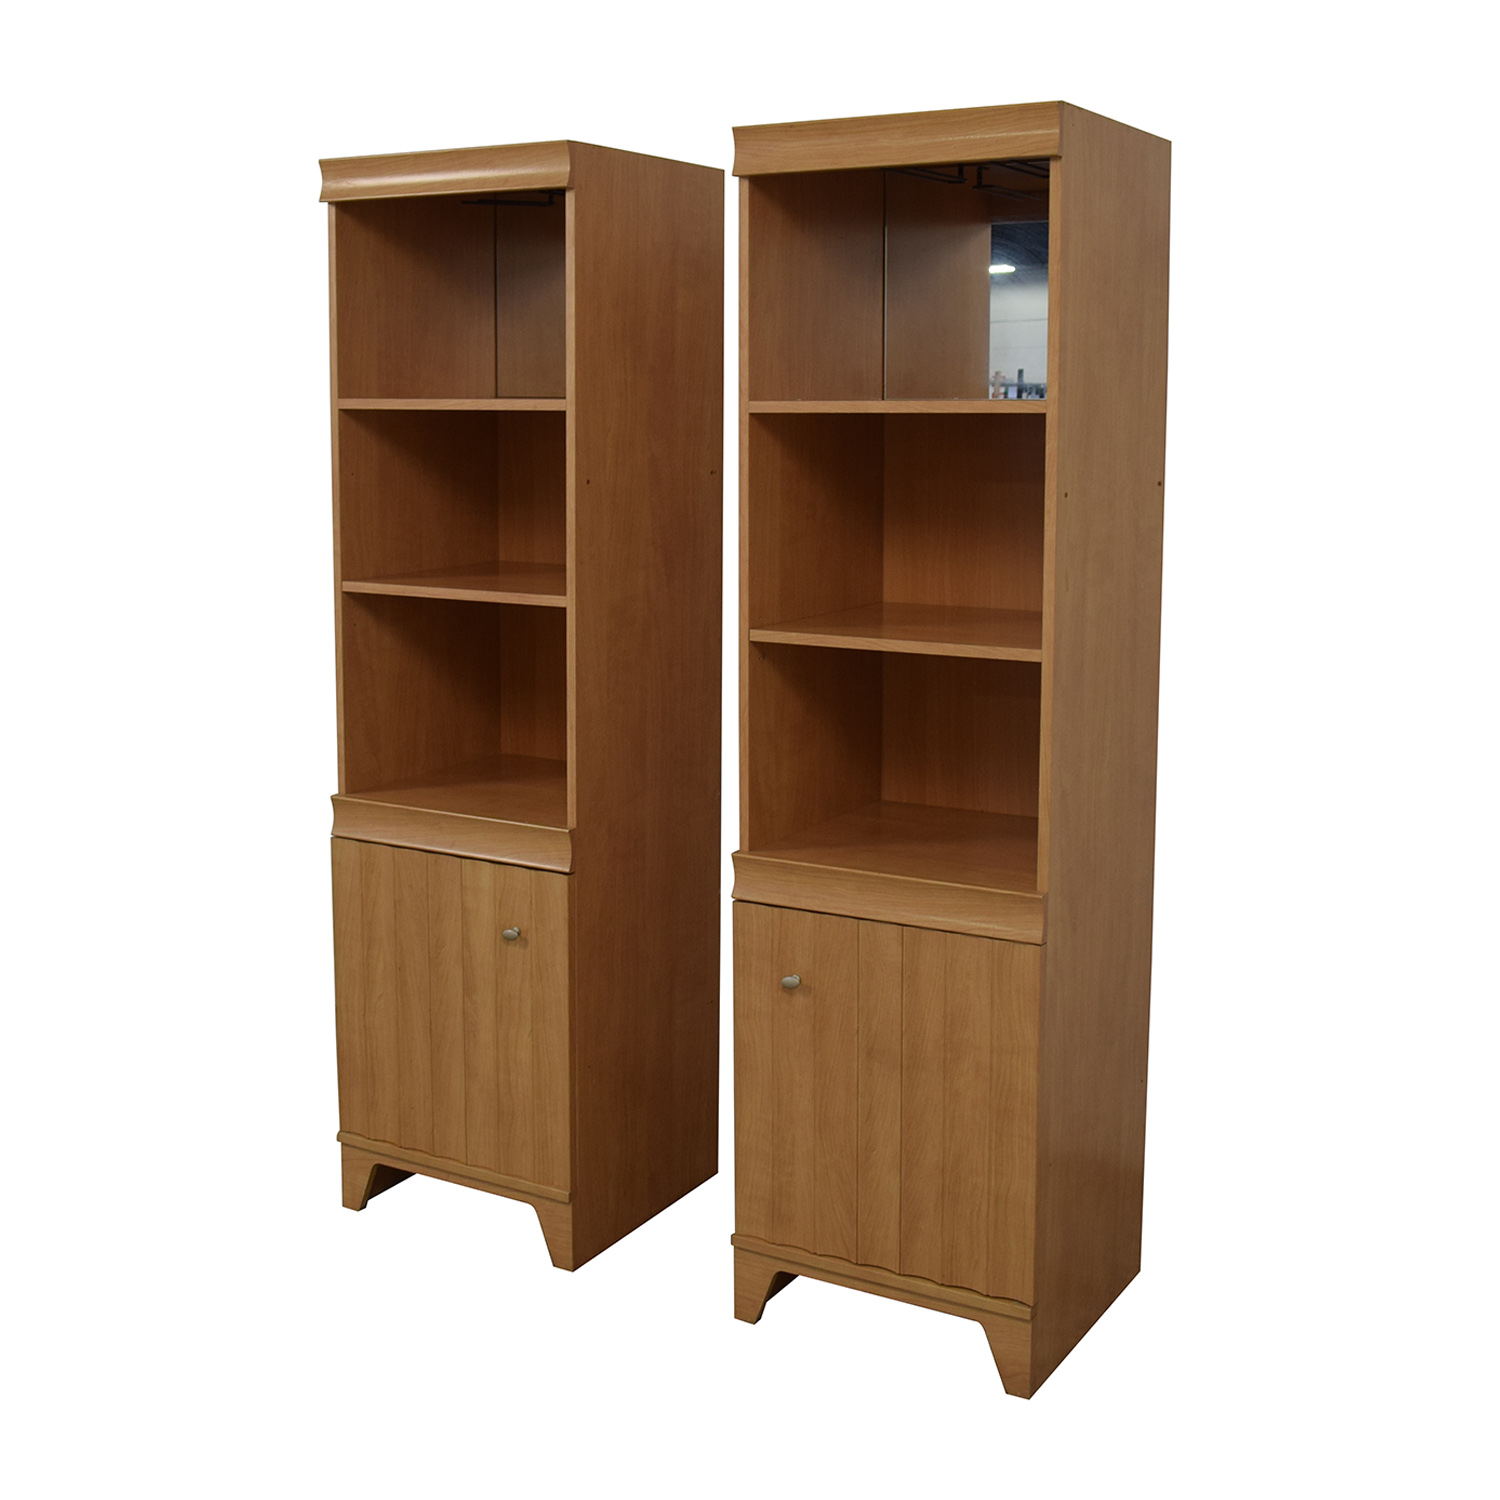 Italian Made Mirrored Bookcases Storage